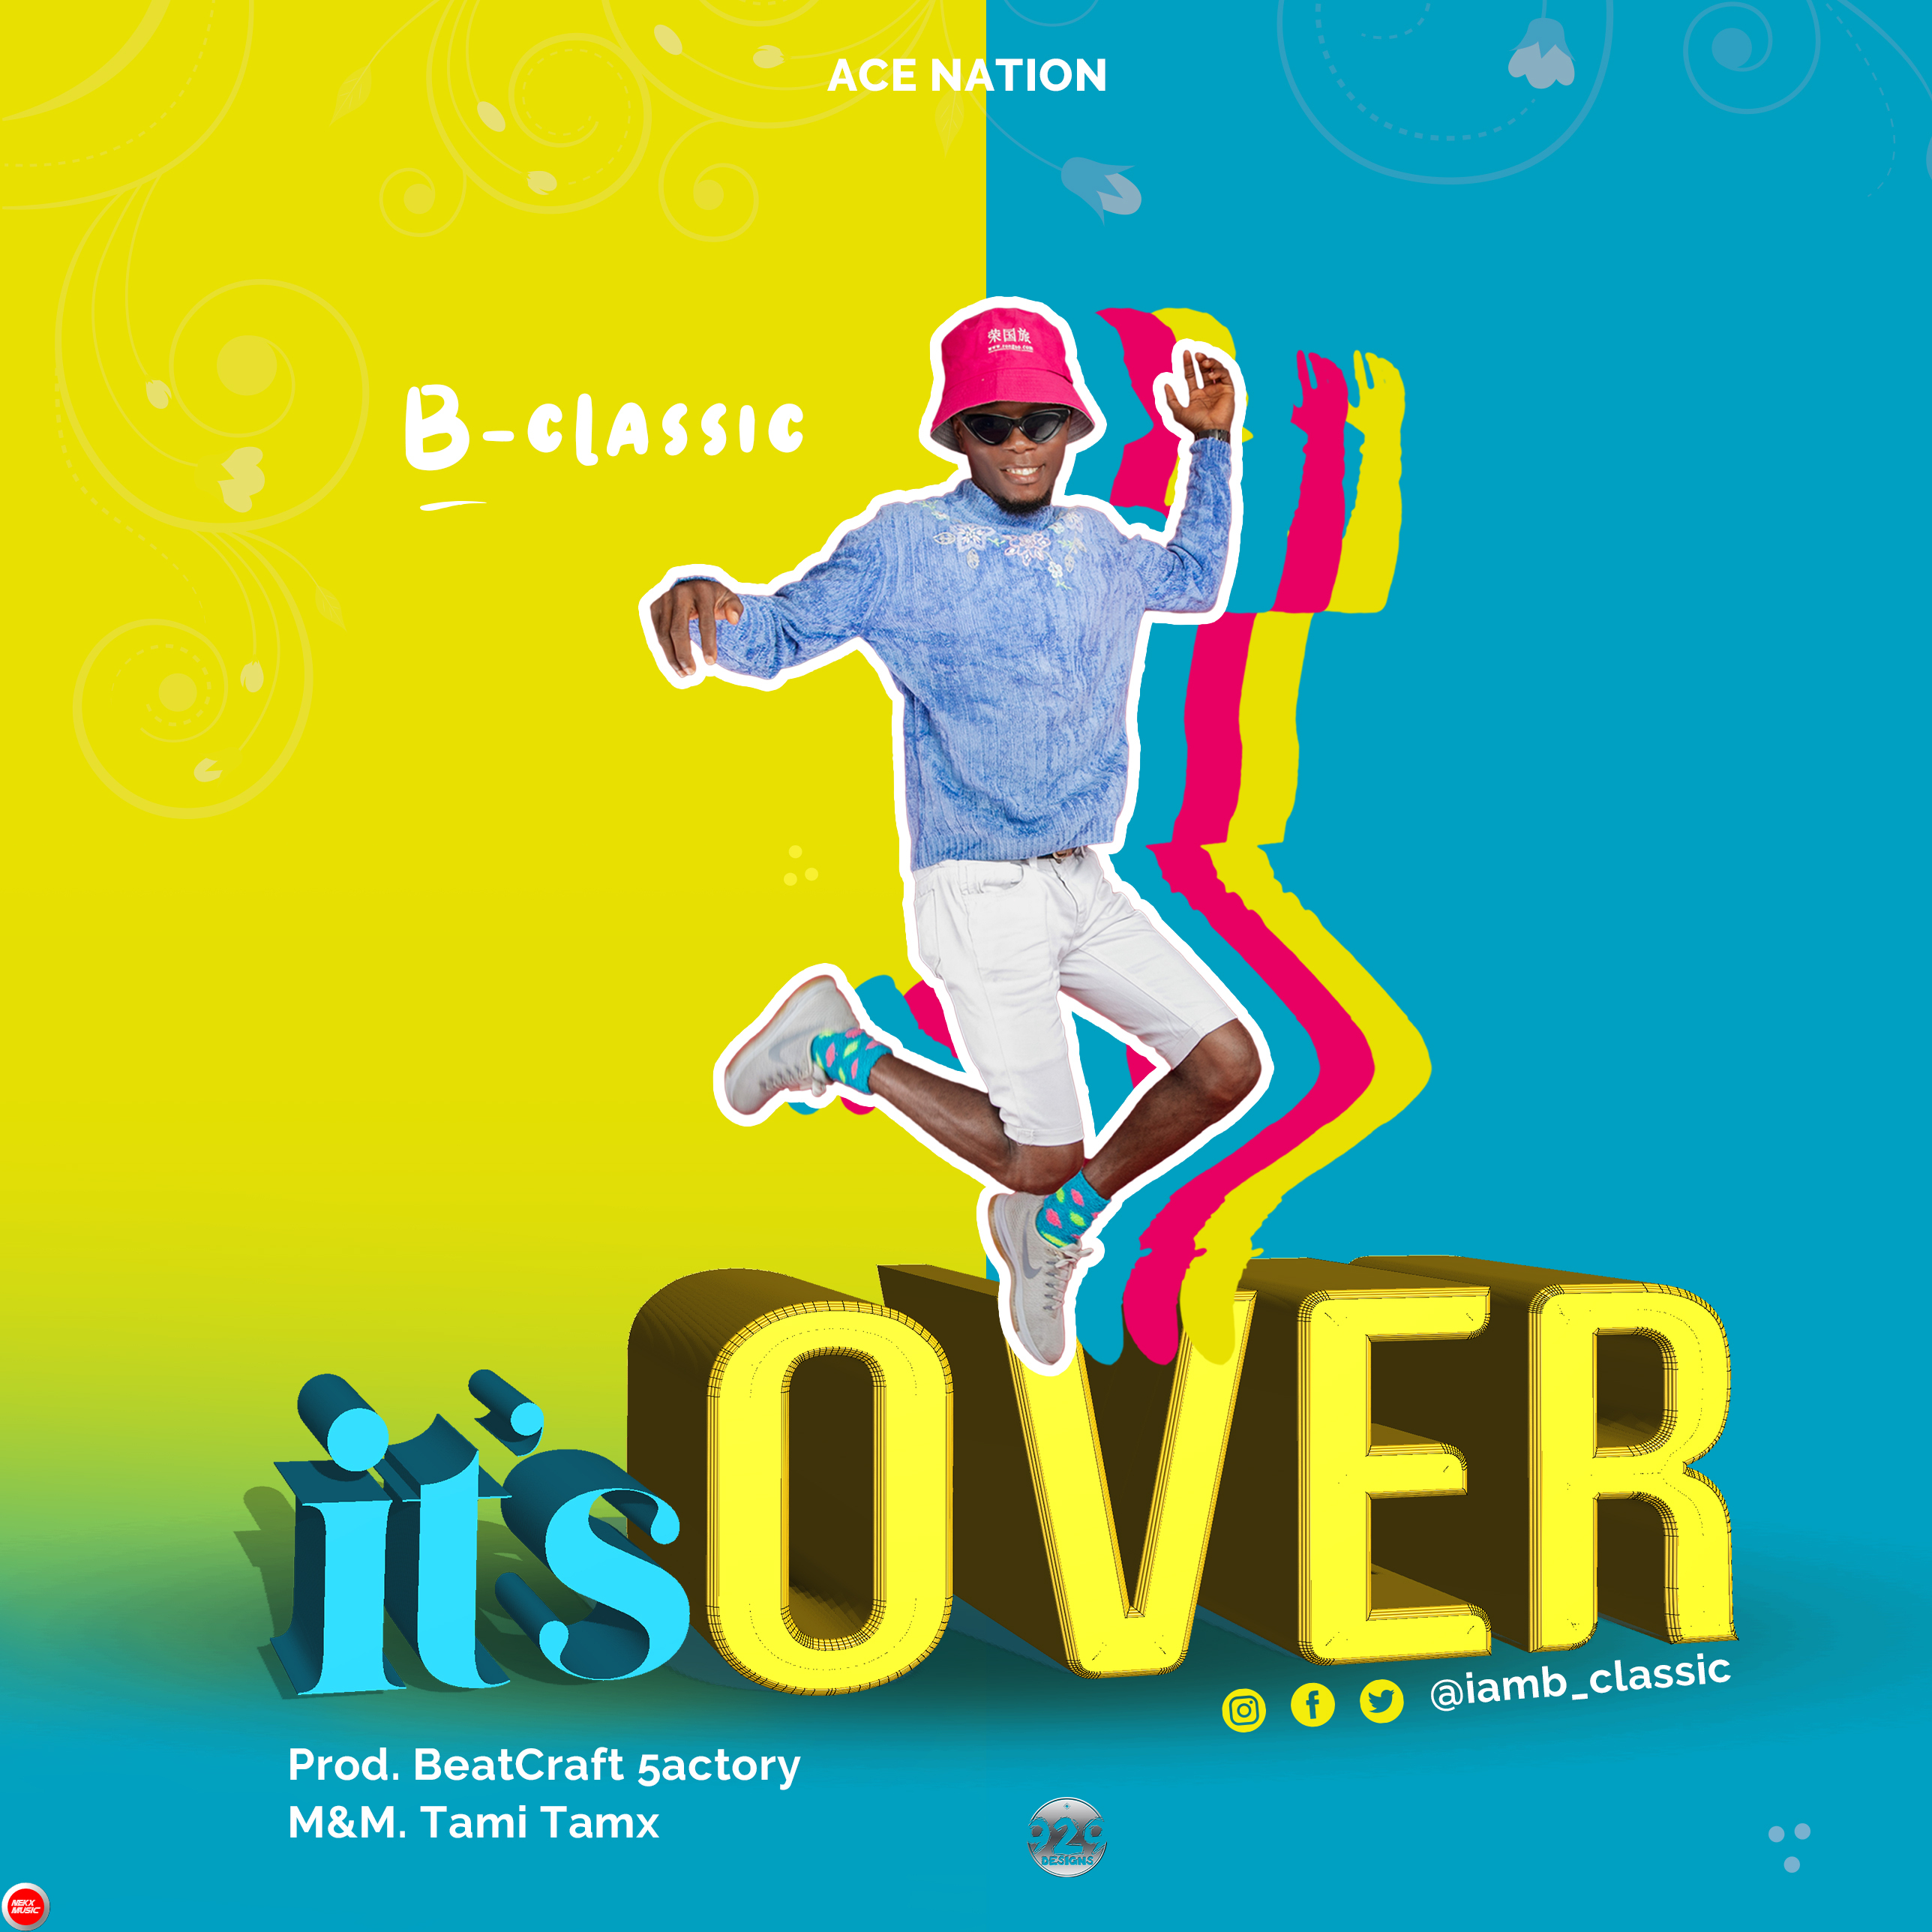 B-classic it's over download